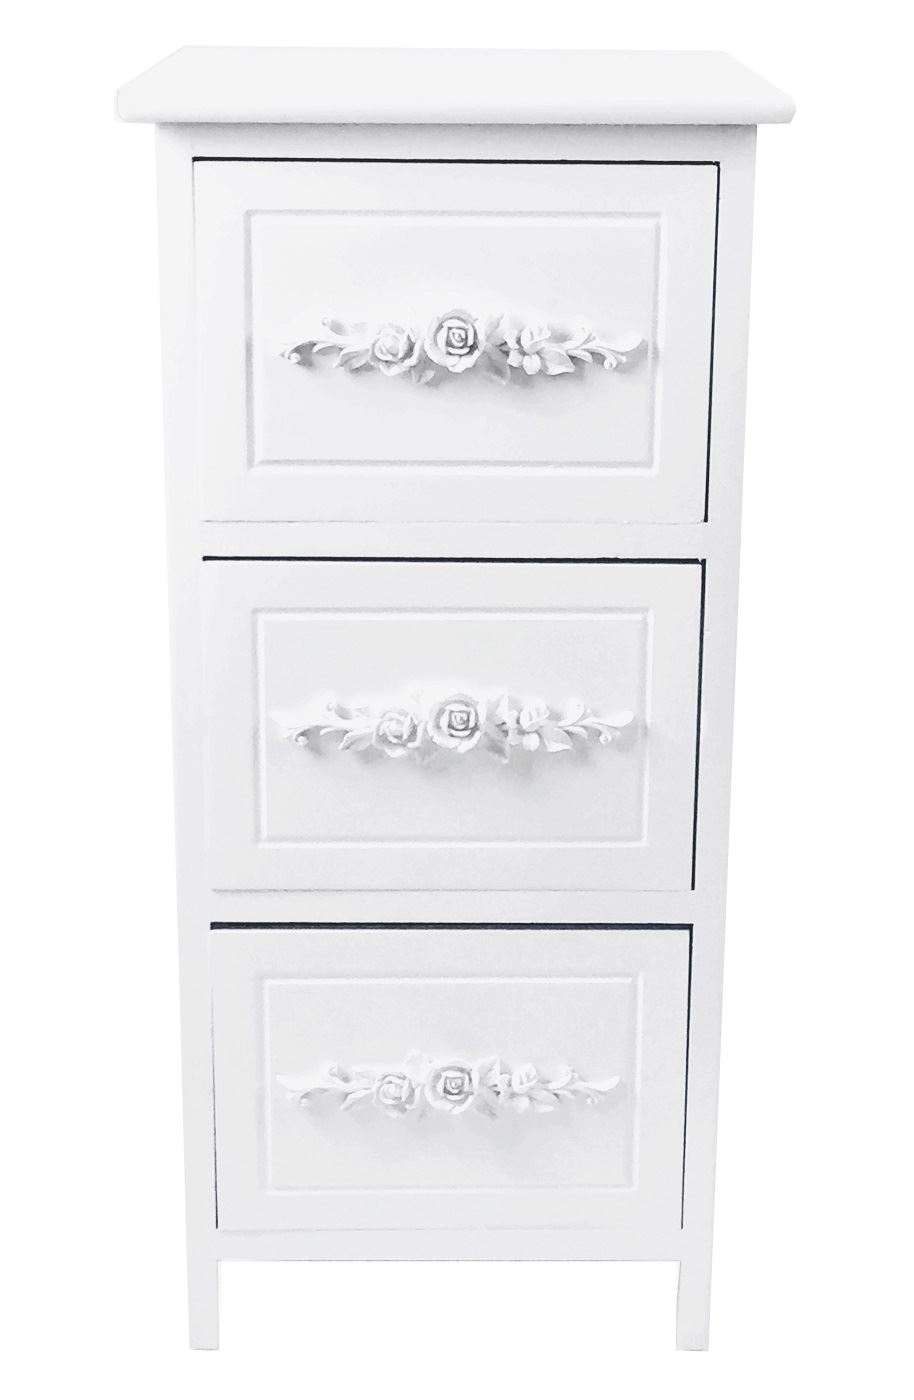 Assembled-Shabby-Chic-Rose-Design-3-Or-4-Draw-Kids-Bedside-Table-Cabinet-Unit